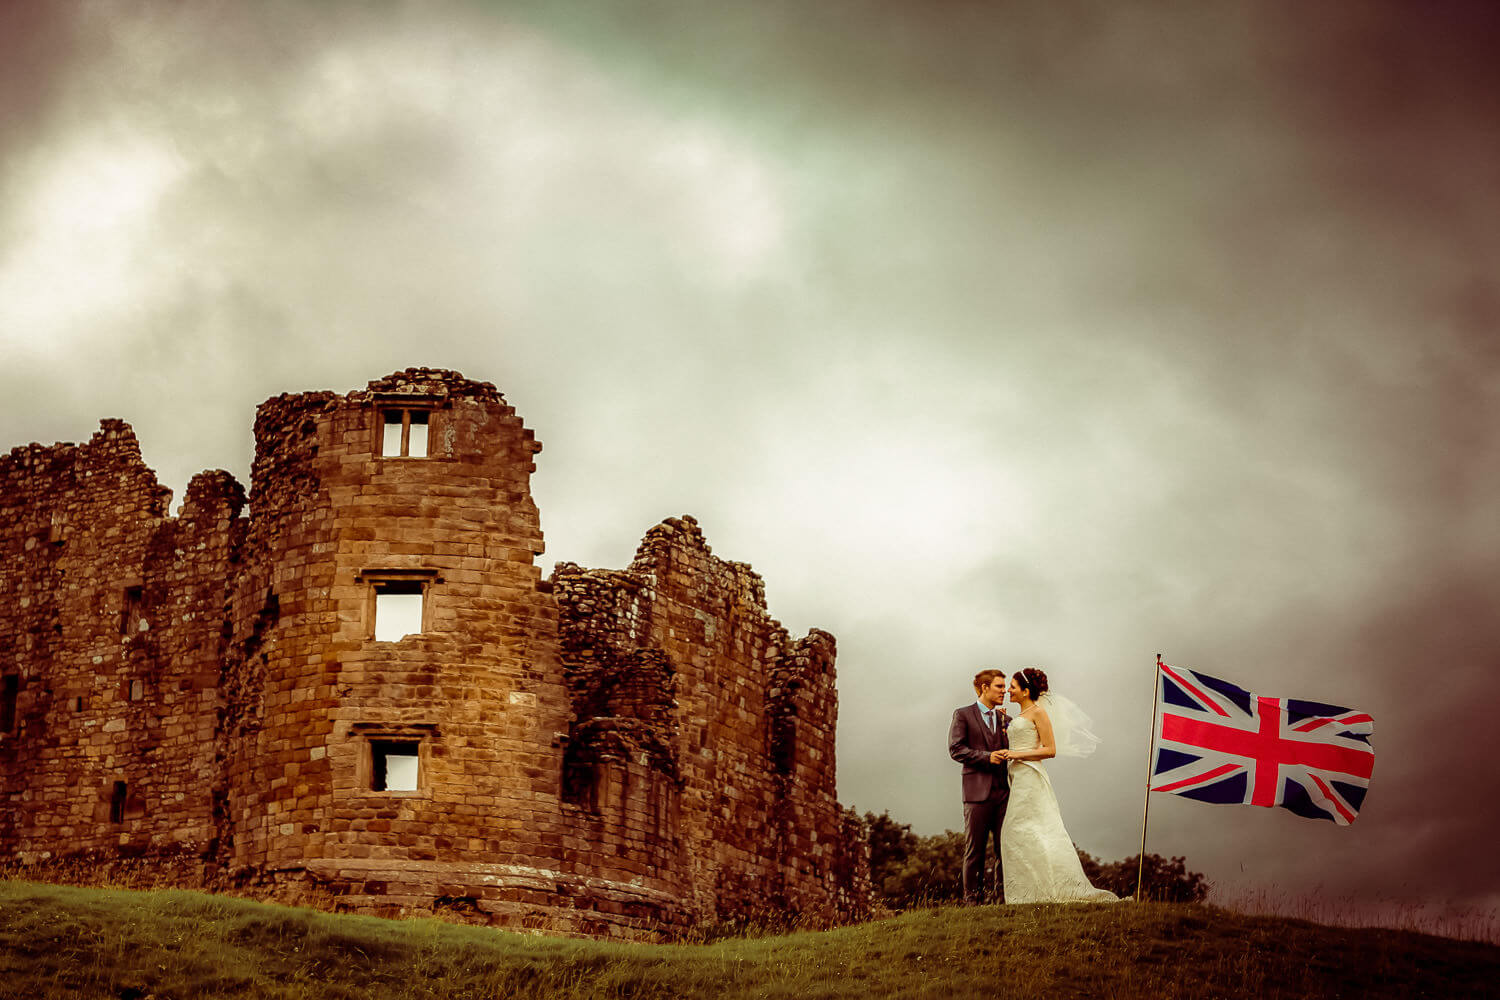 How to choose a wedding photographer UK. Bride and groom next to old castle with Union Jack flag